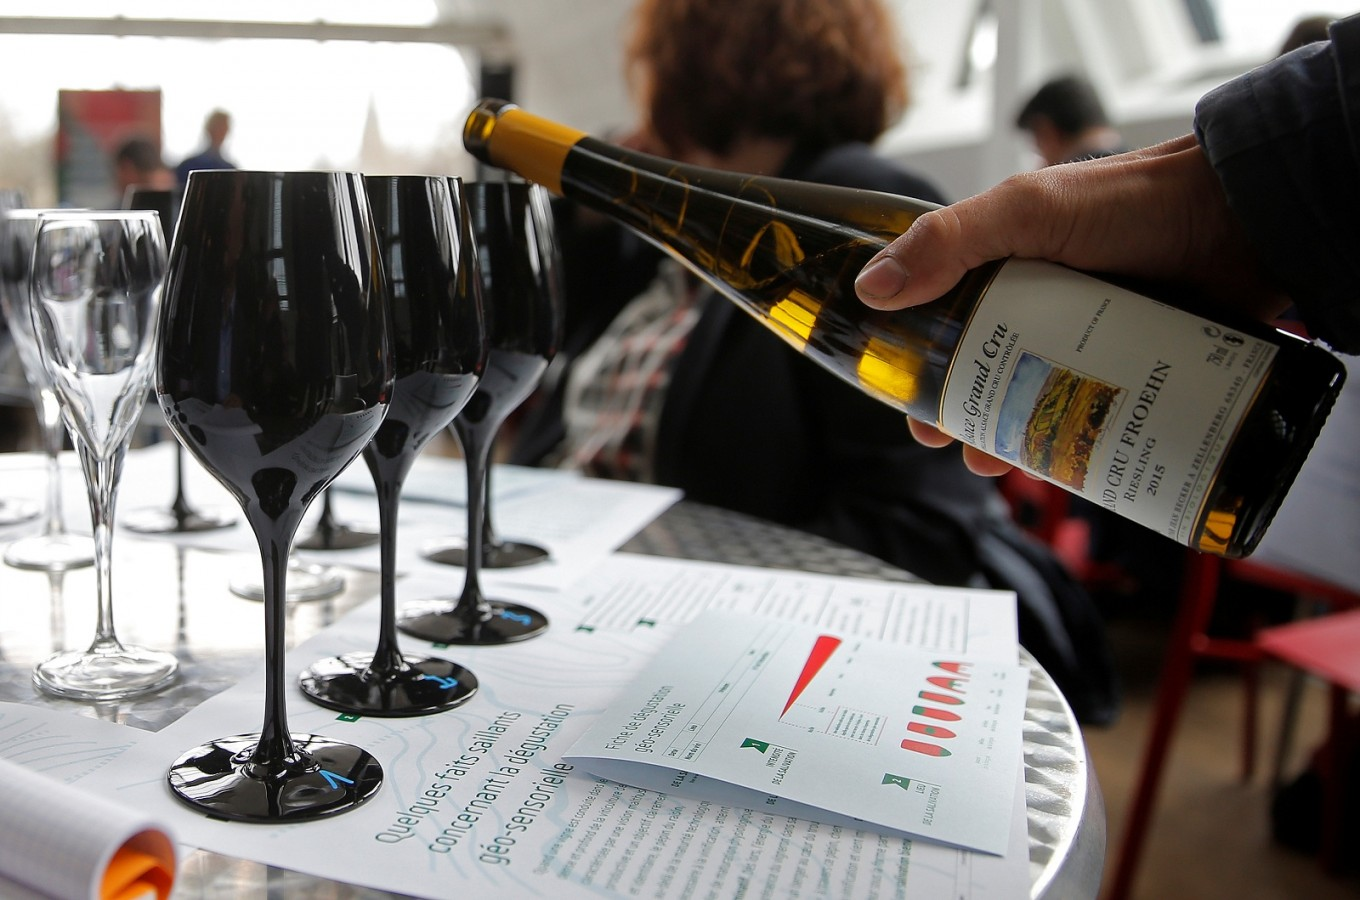 France uncorks university diploma for wine-lovers